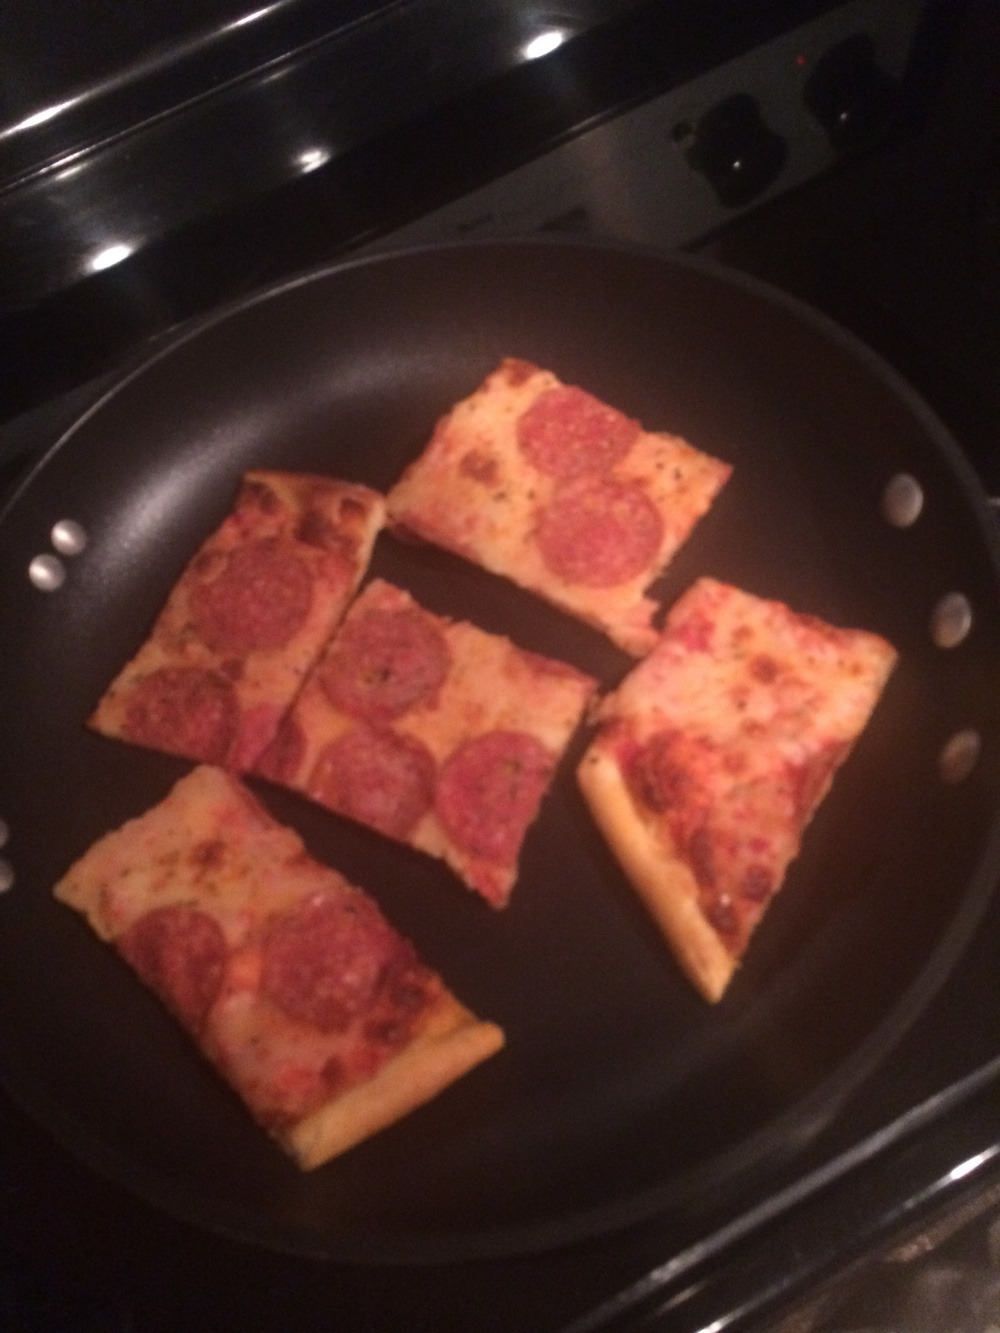 P.S.: Heating up leftover pizza in a frying pan is the best way to ensure a crispy, non-soggy crust.